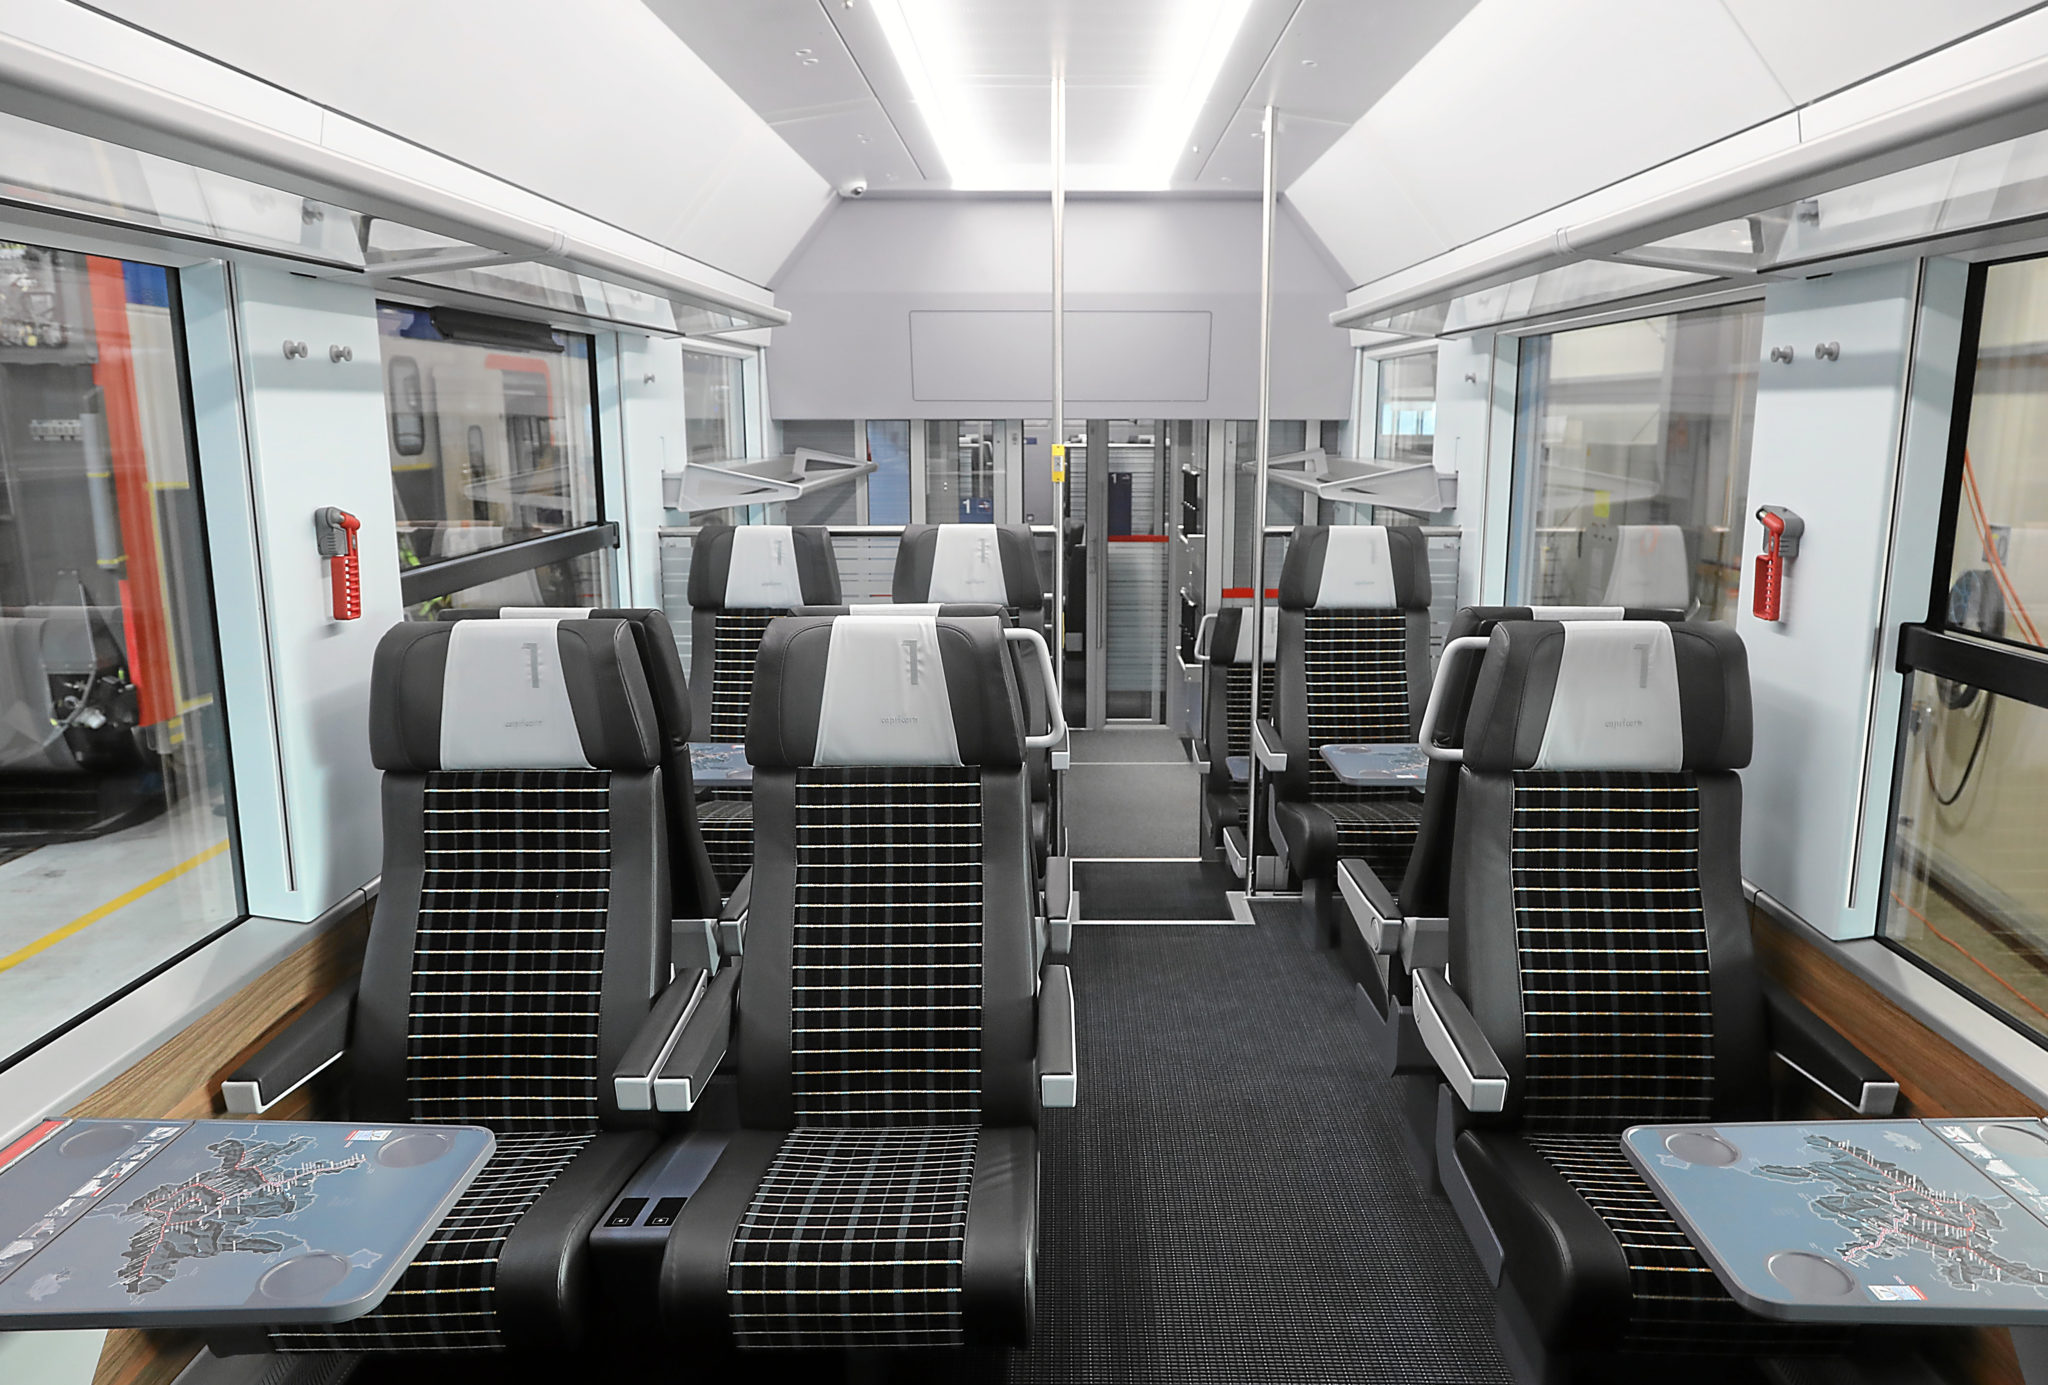 First class interior of the new Capricorn train